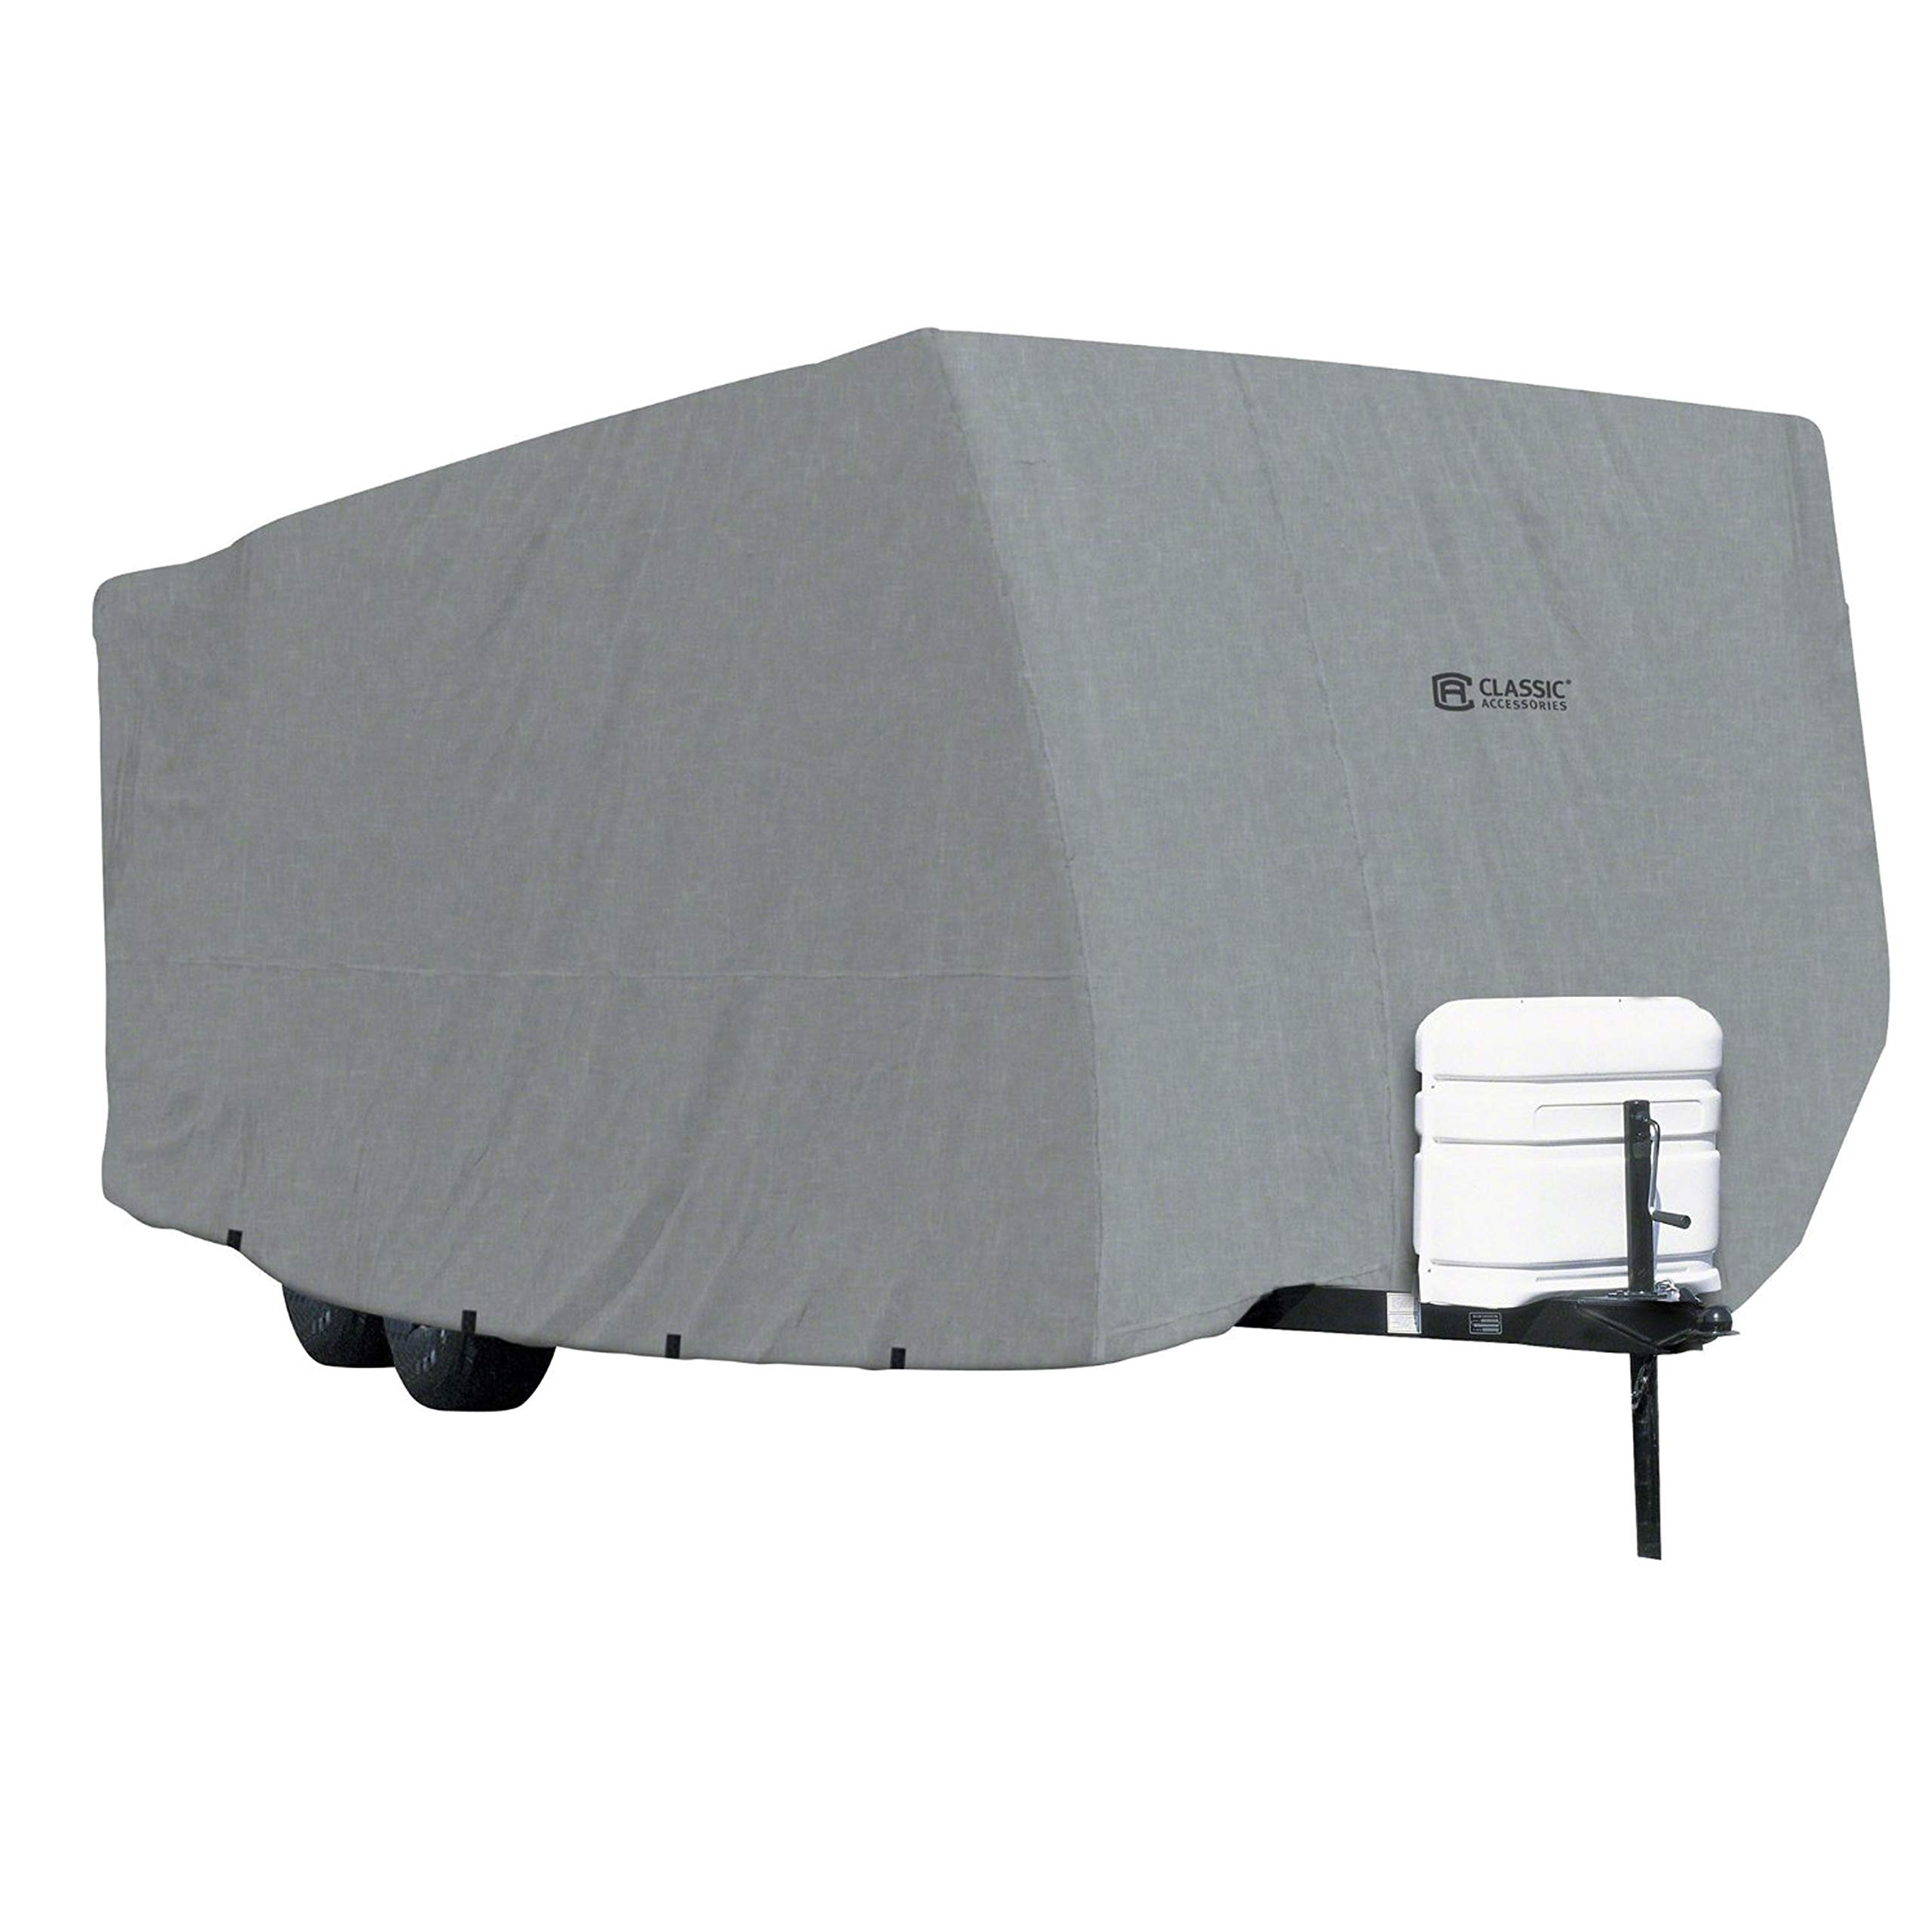 Classic Accessories OverDrive PolyPro 1 Cover for 35' to 38' Travel Trailers